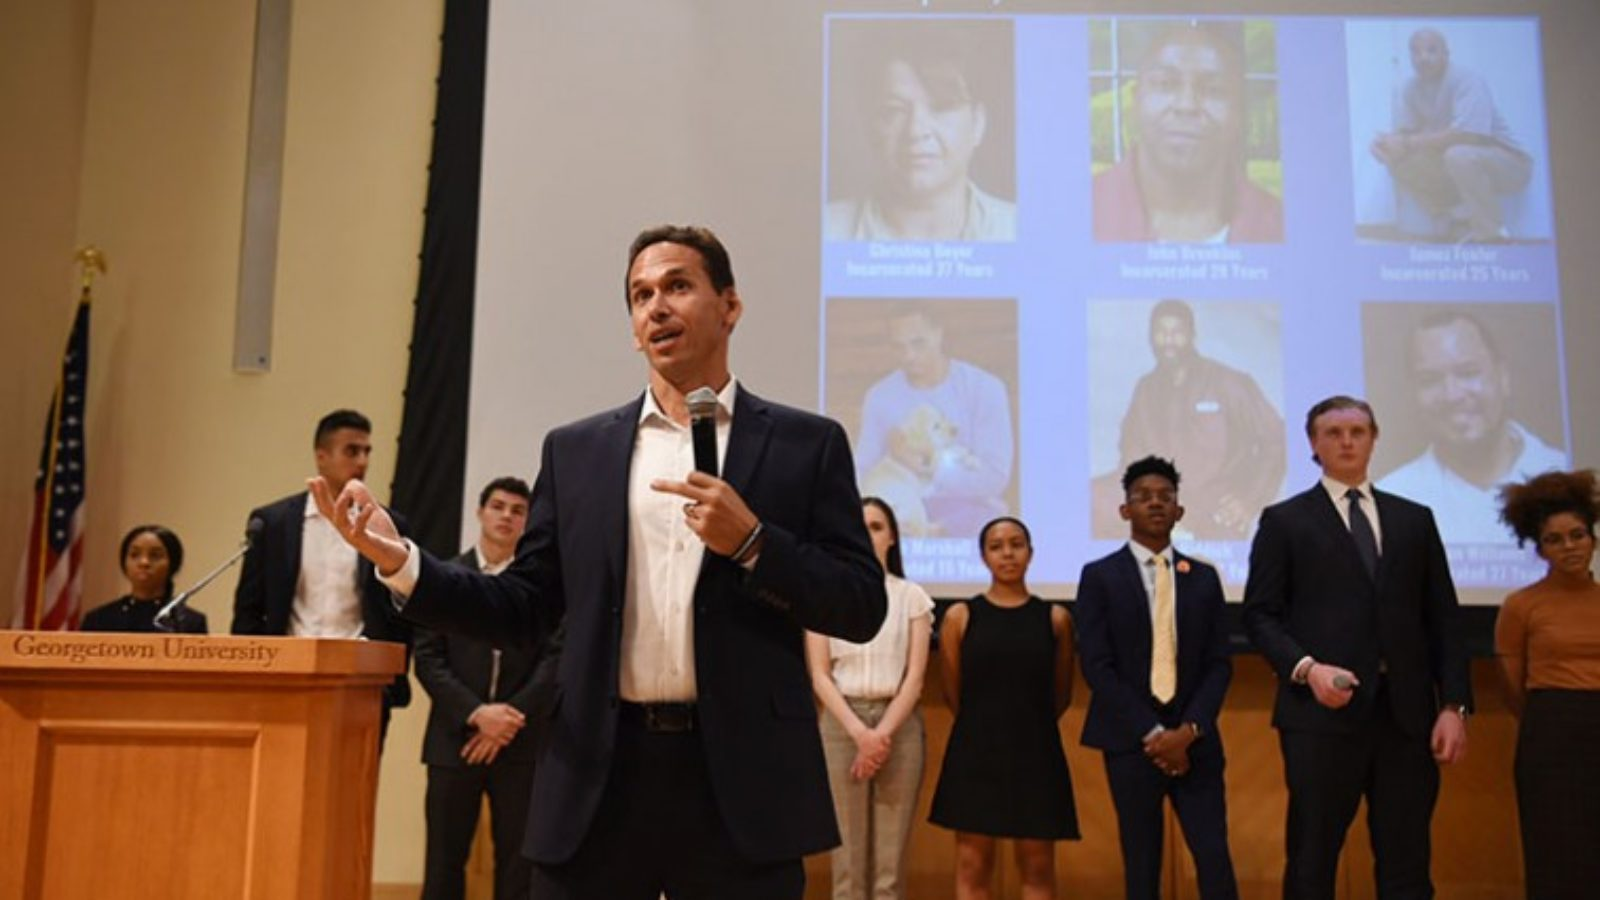 Marc Howard standing with microphone in front of students and video screen of six incarcerated individuals